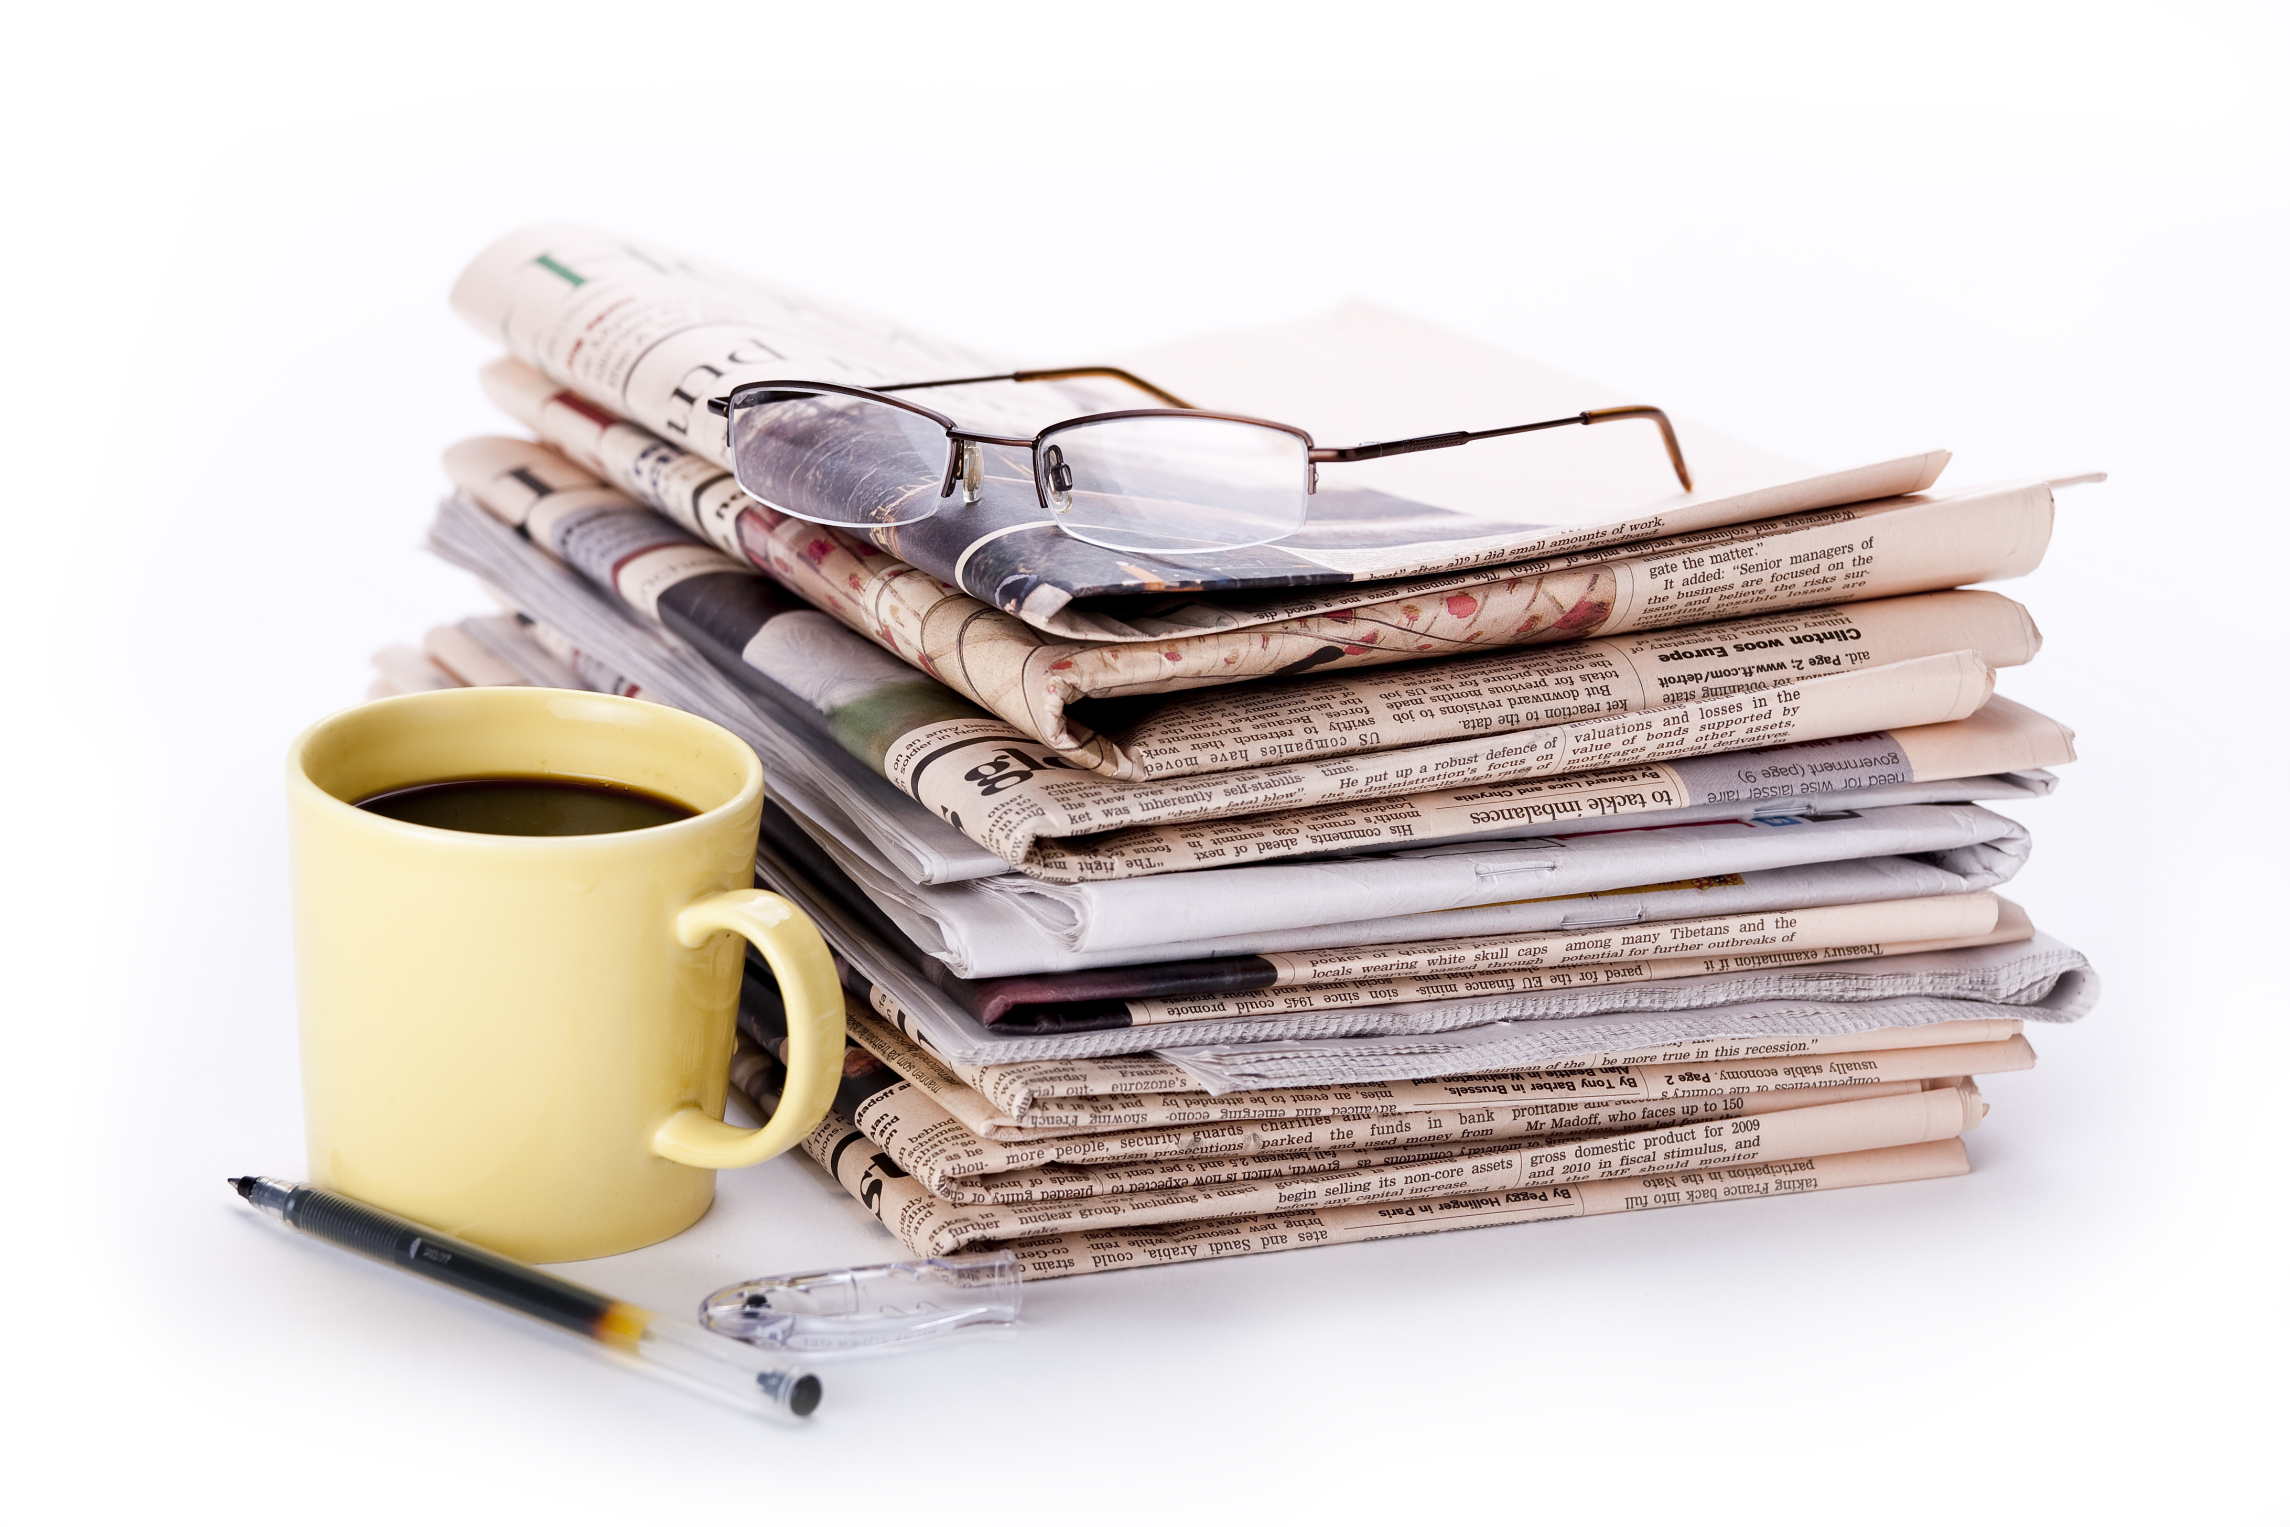 12 property magazines and newspaper you should read